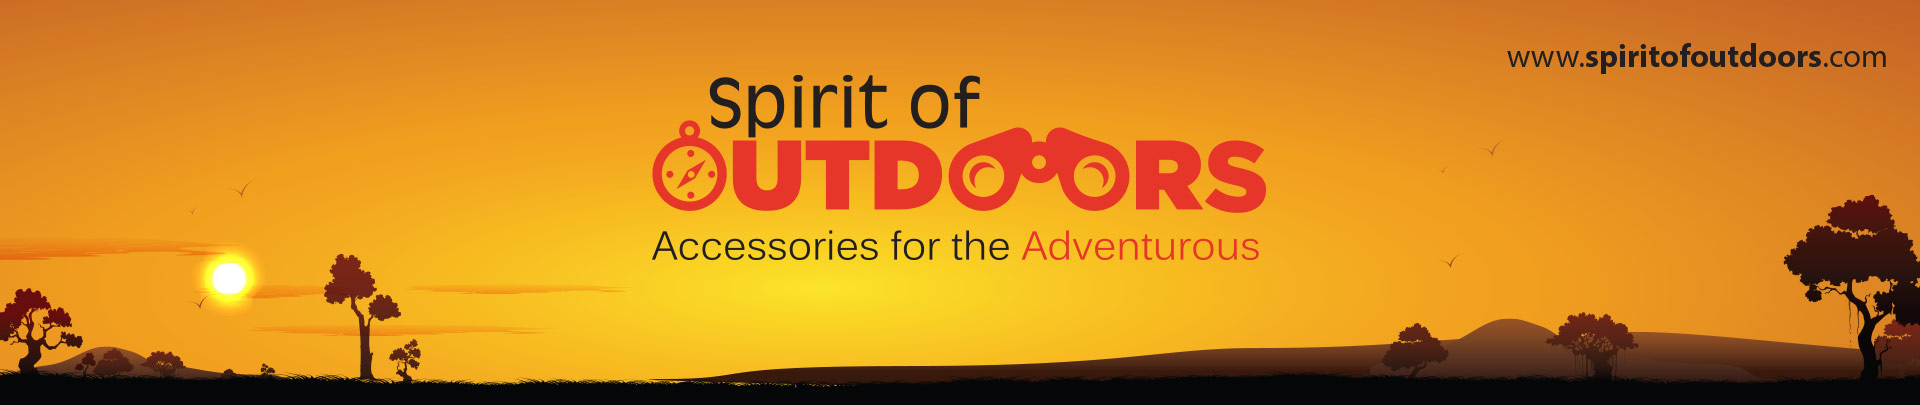 outdoor banner design for spirit of outdoors